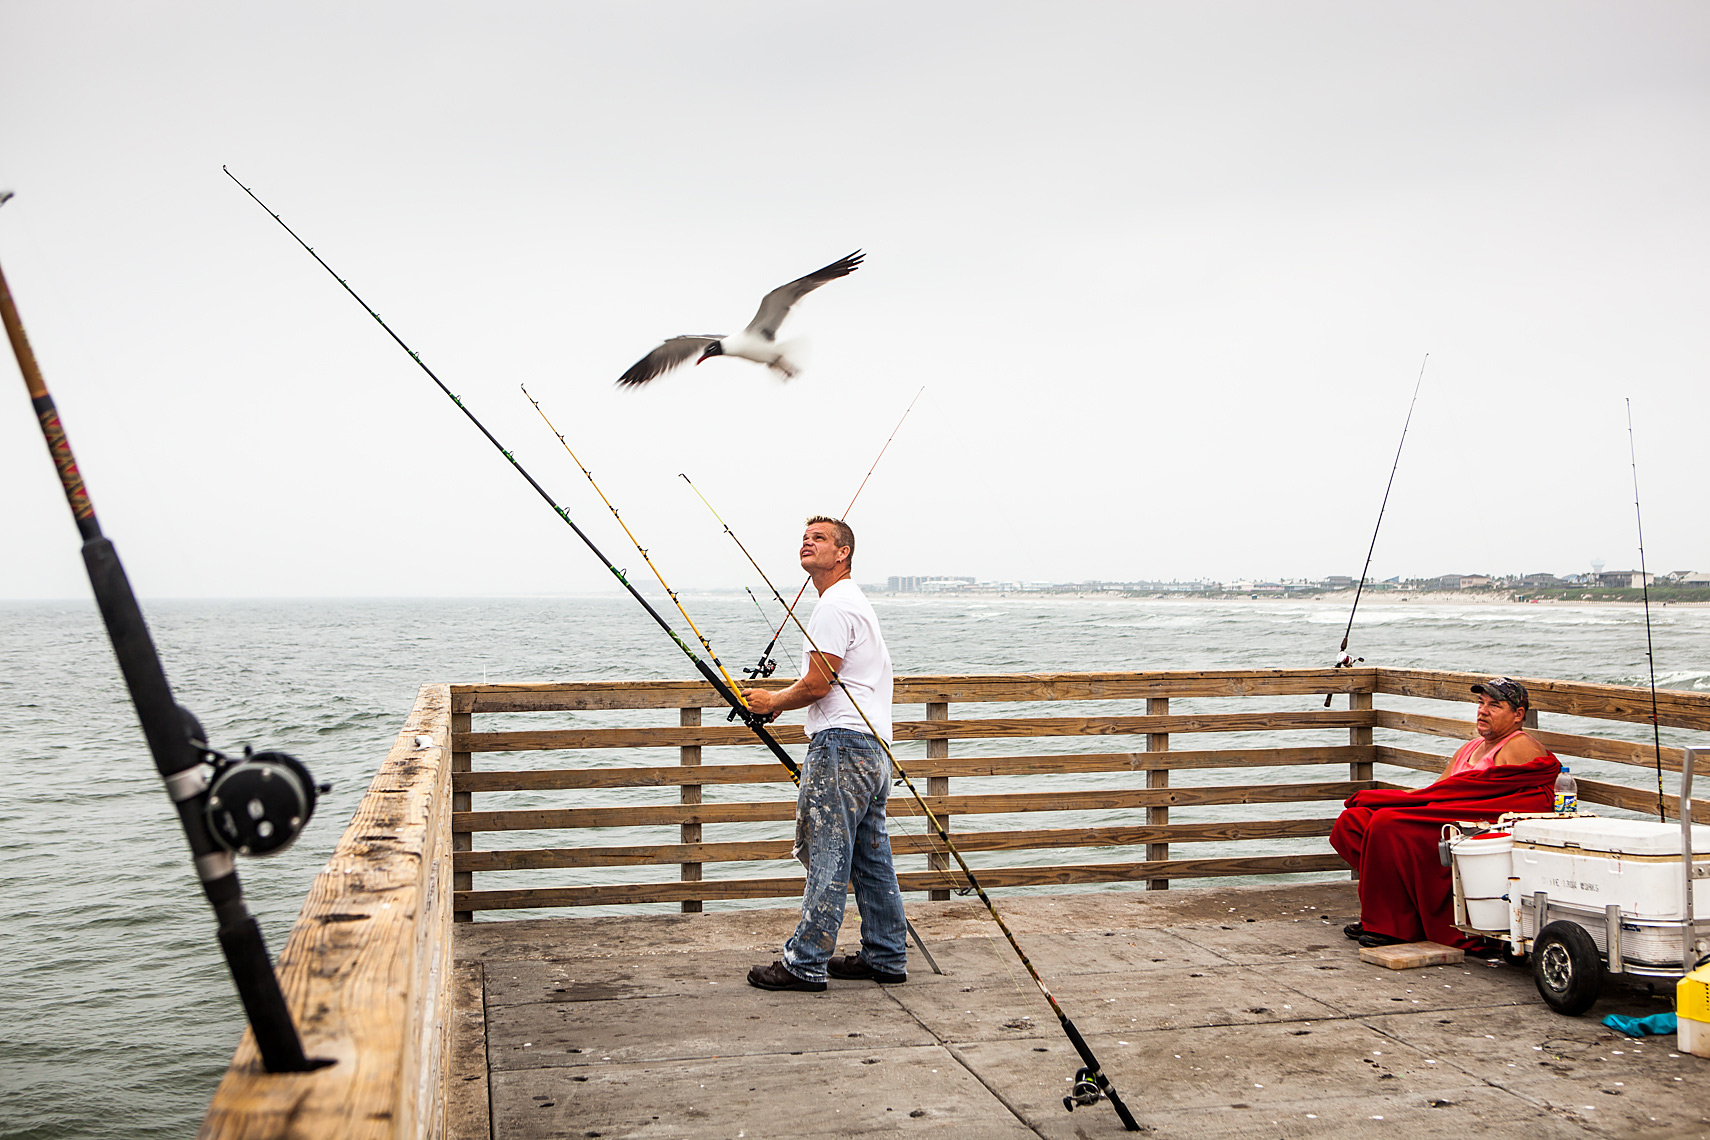 Fishing off Horace Caldwell Pier, Port Aransas